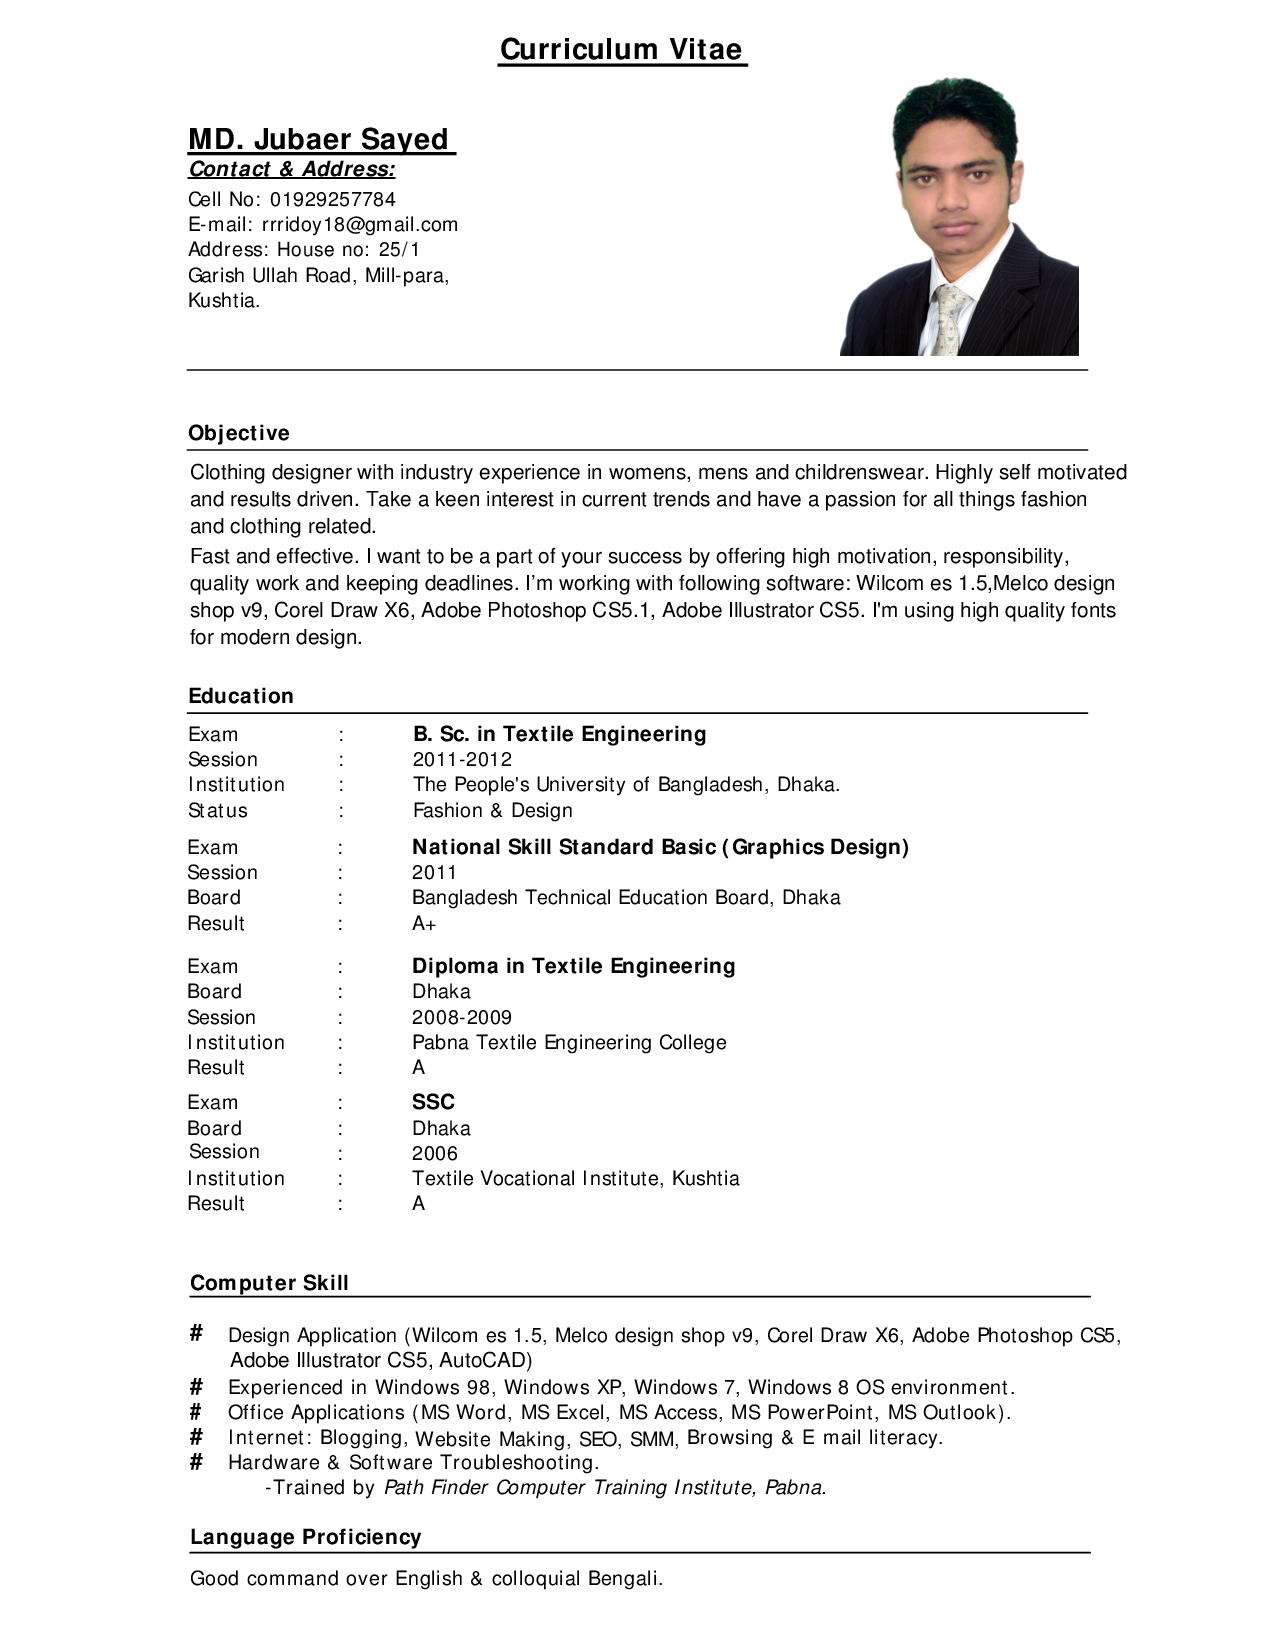 example resume computer skills and education for curriculum vitae resume samples pdf curriculum vitae - Example Resume